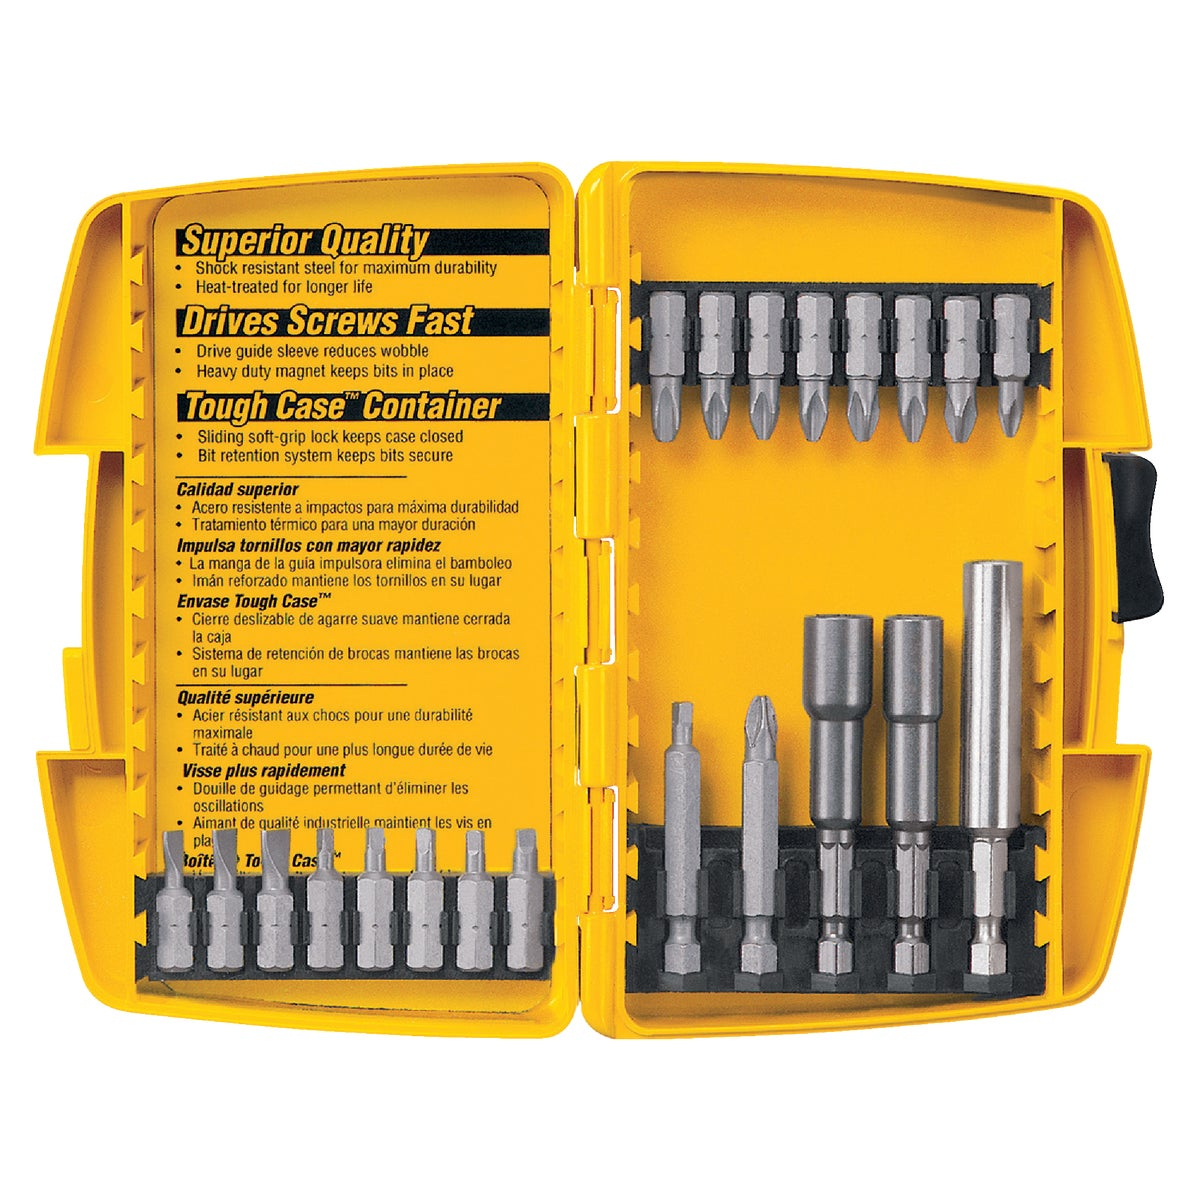 22PC DRYWALL BIT SET - DW2161 by DeWalt